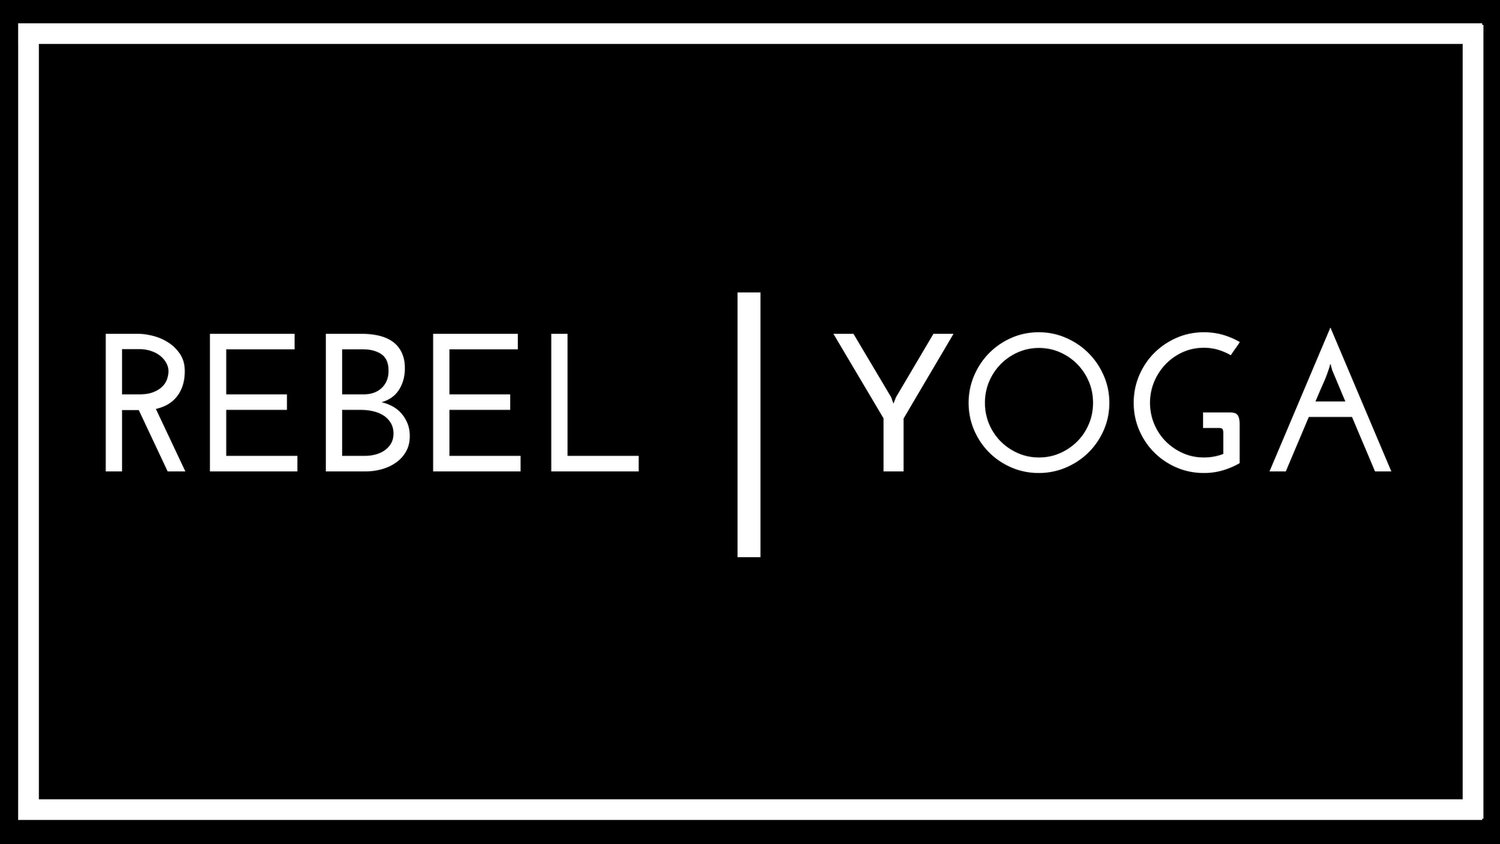 REBEL YOGA